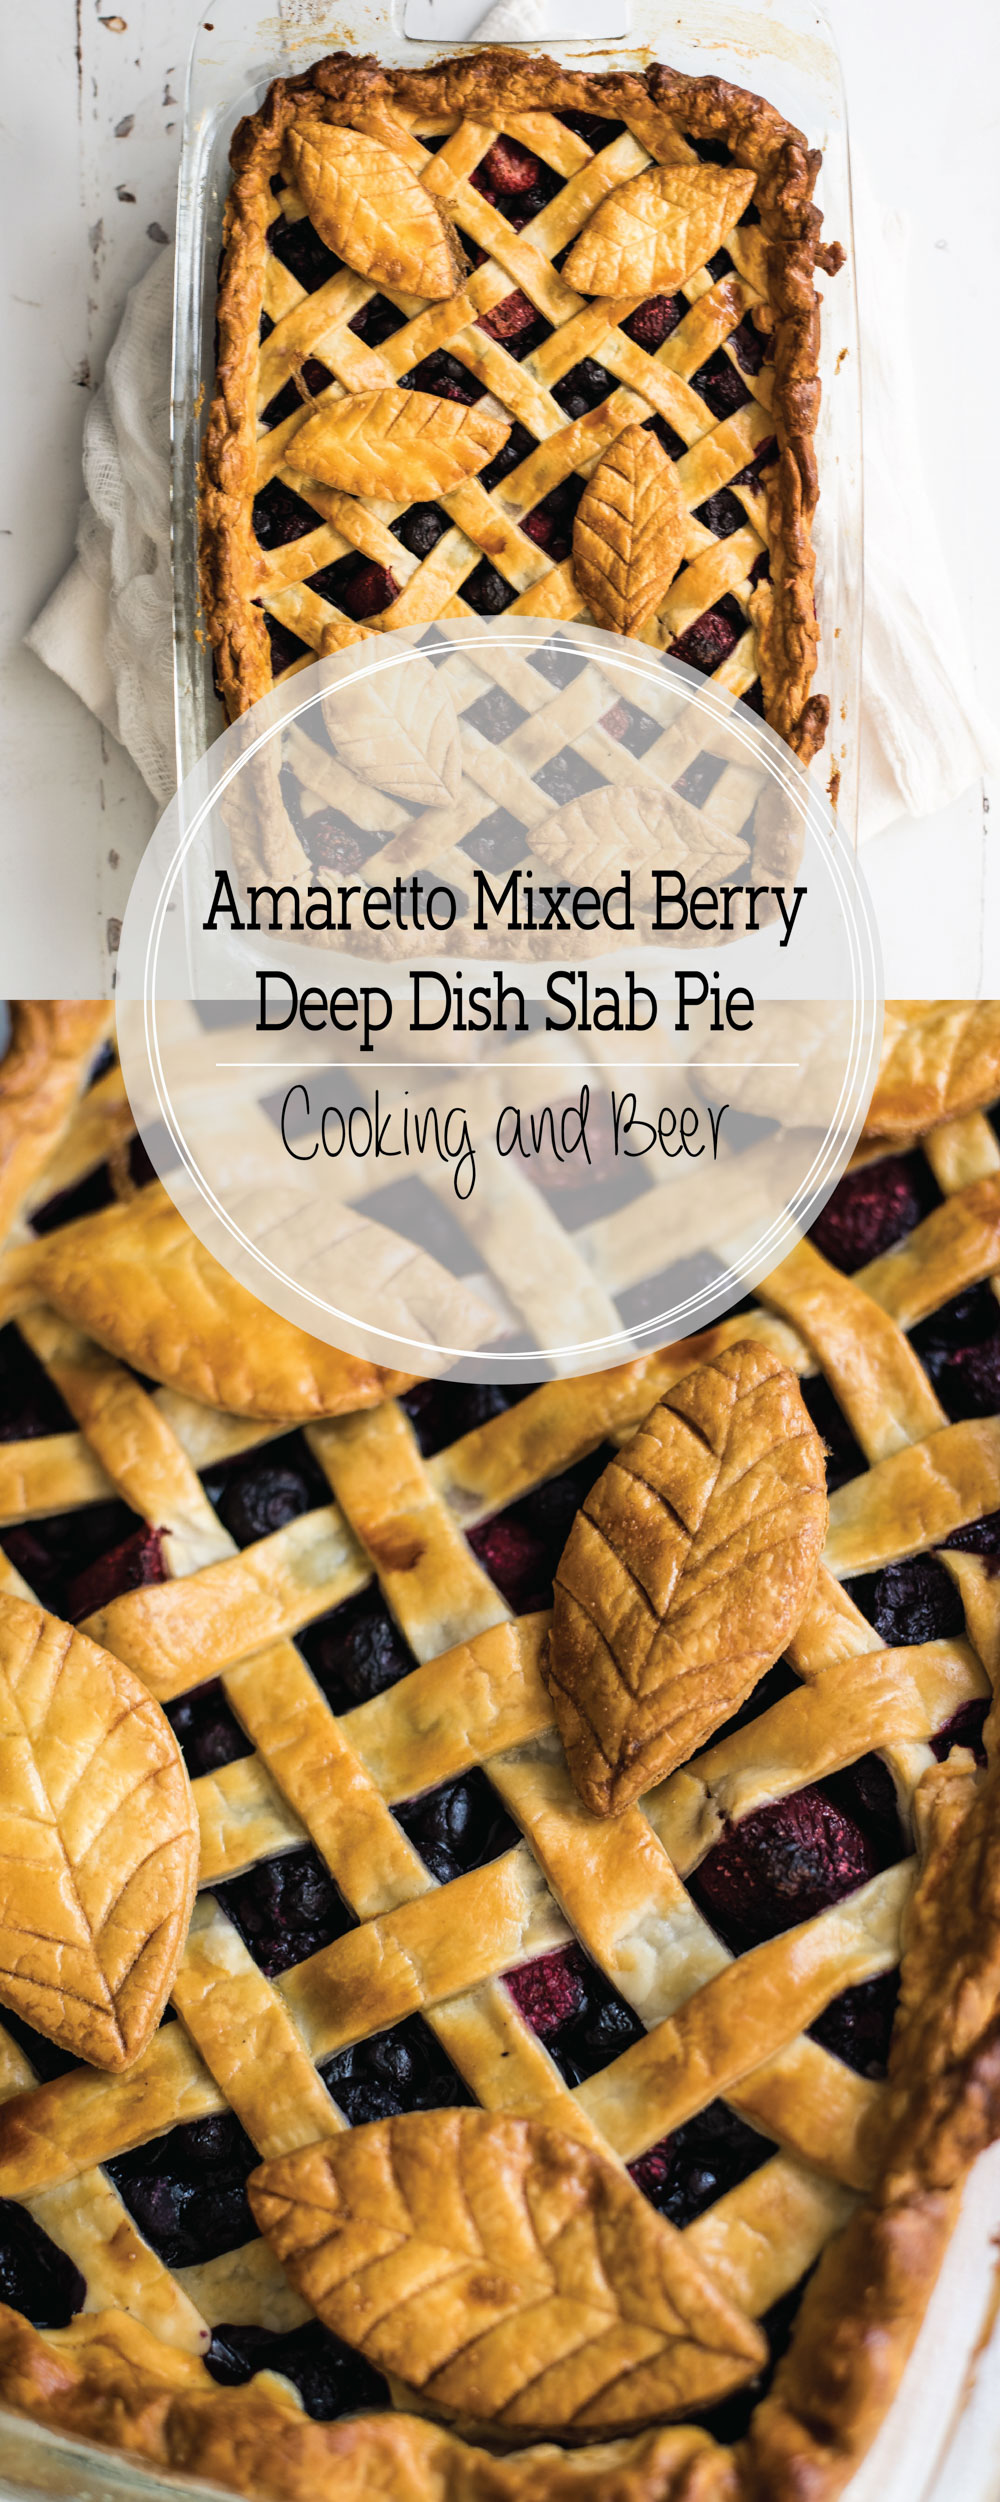 Amaretto Amaretto Mixed Berry Deep Dish Slab Pie Deep Dish Slab Pie is the perfect dessert recipe for your Thanksgiving spreads!